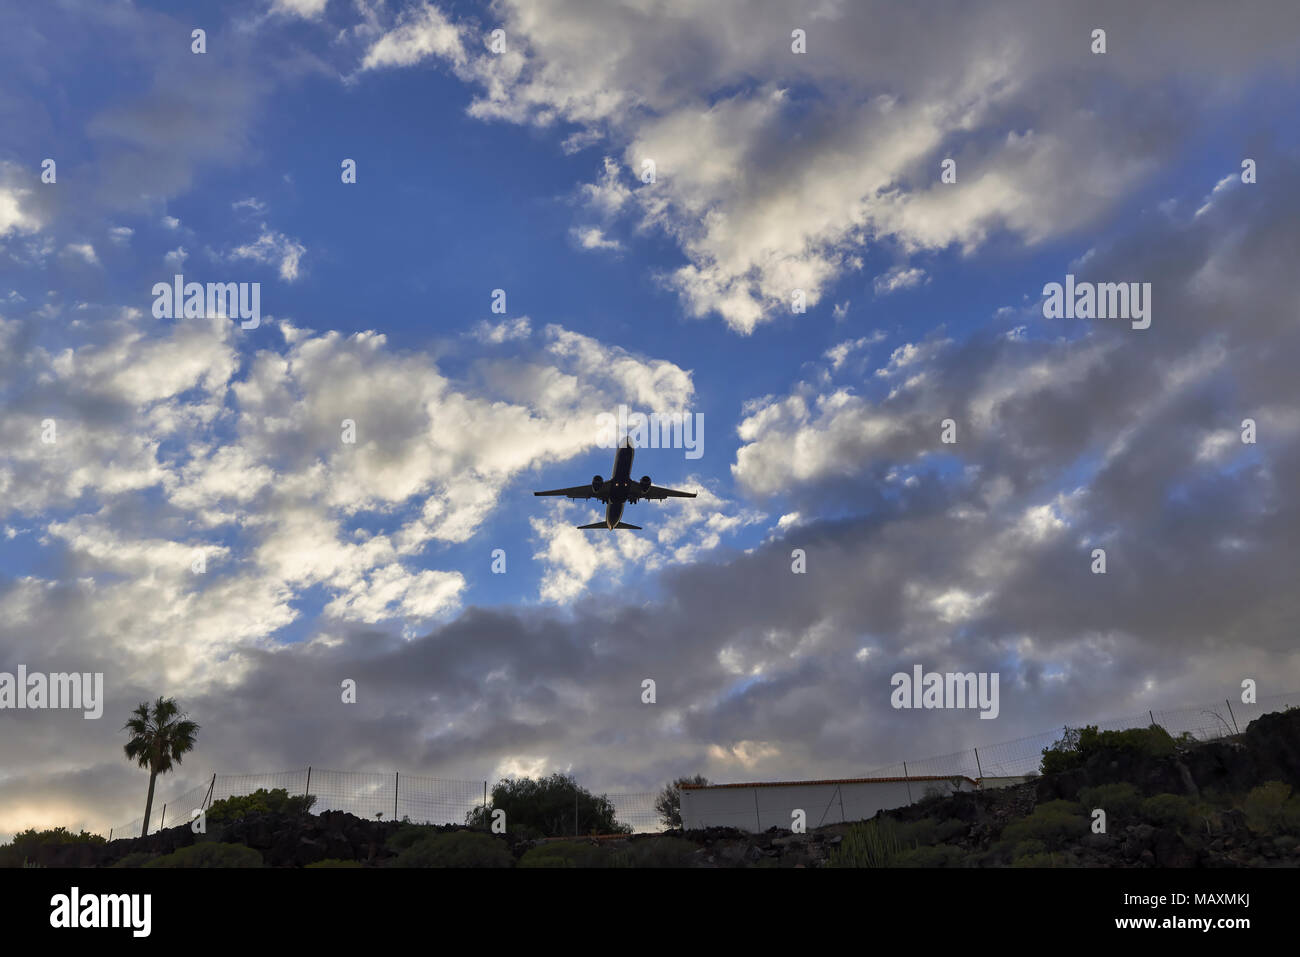 A Ryanair Passenger Jet on approach to Las Palmas de Gran Canaria Airport on one warm evening on the Island of Tenerife. - Stock Image